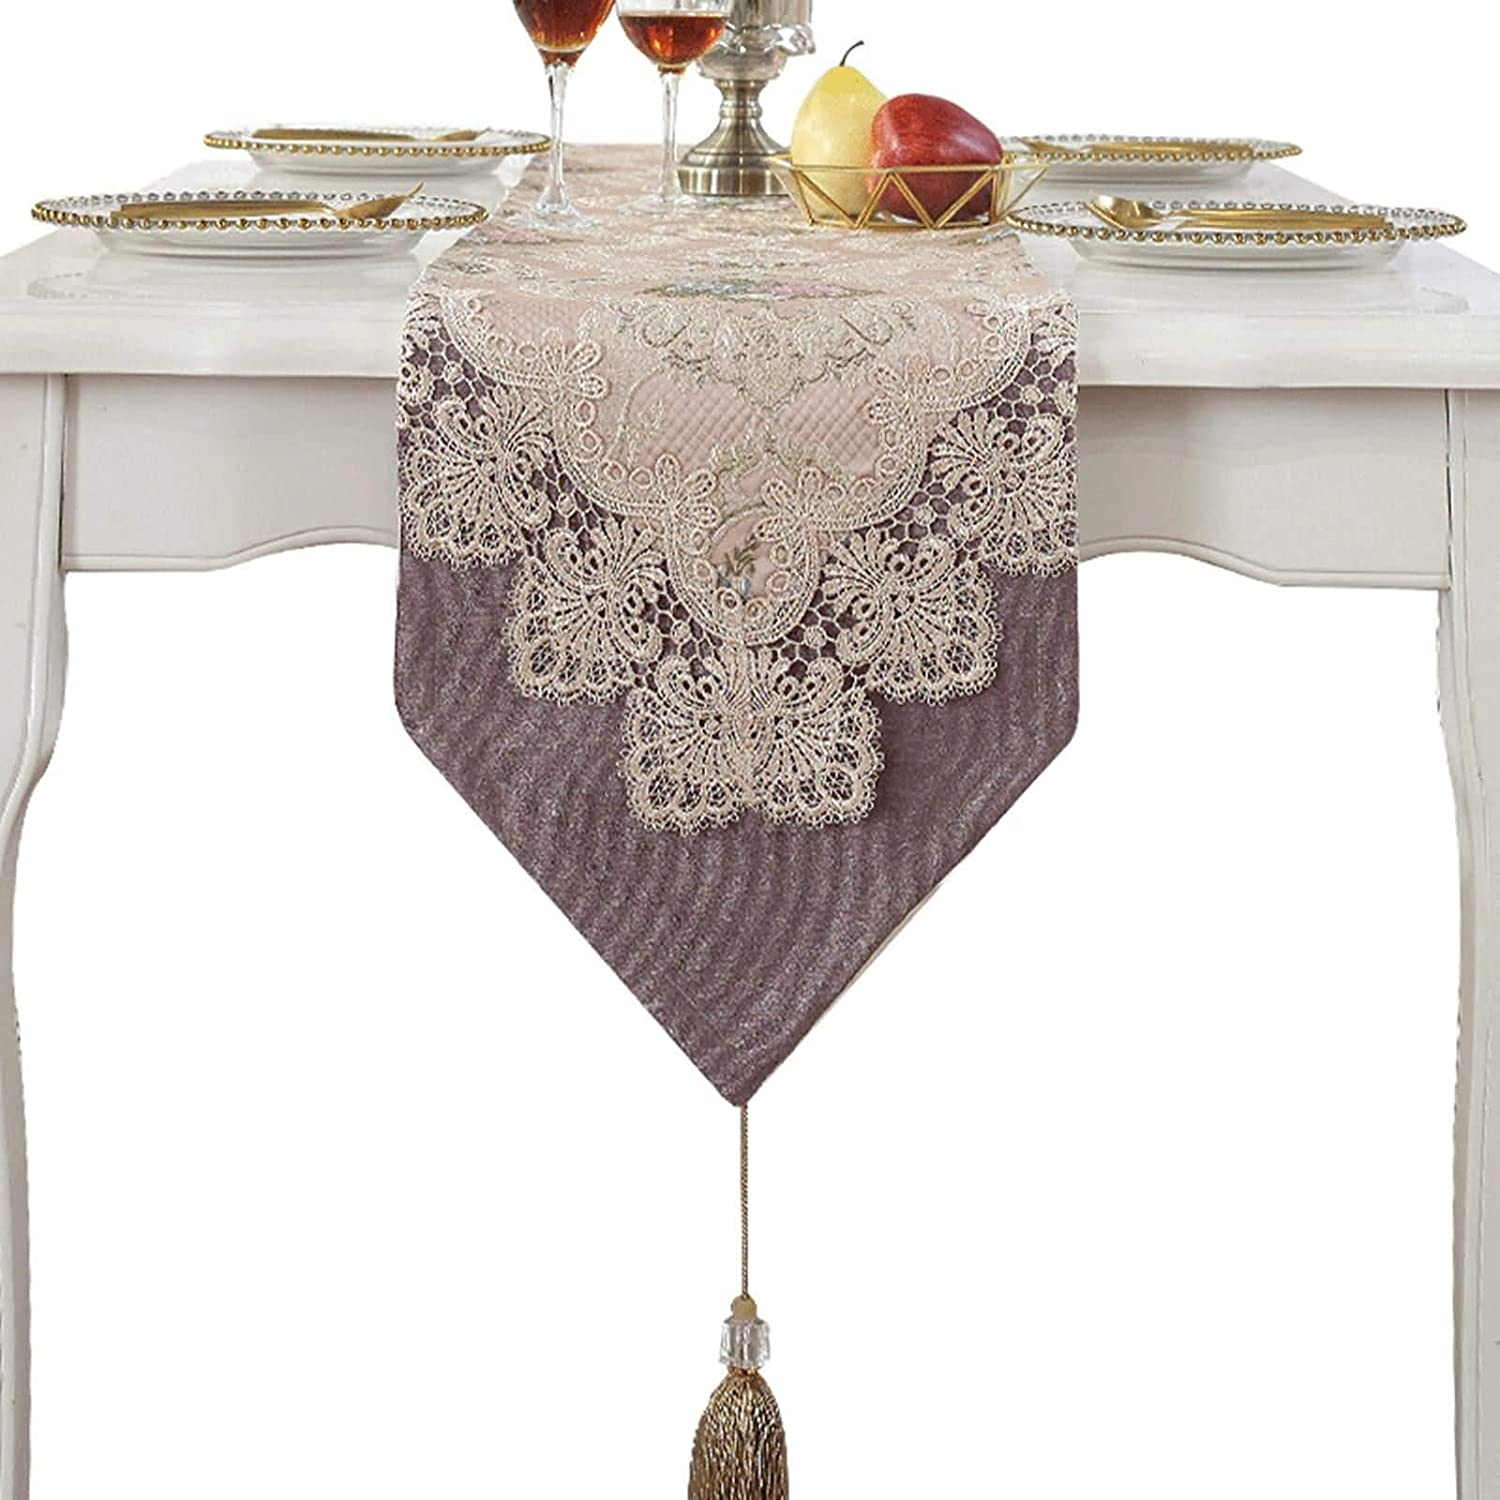 Aokarry Table Runner - Polyester Fringed Triangle New York Popular Mall lace Embroider